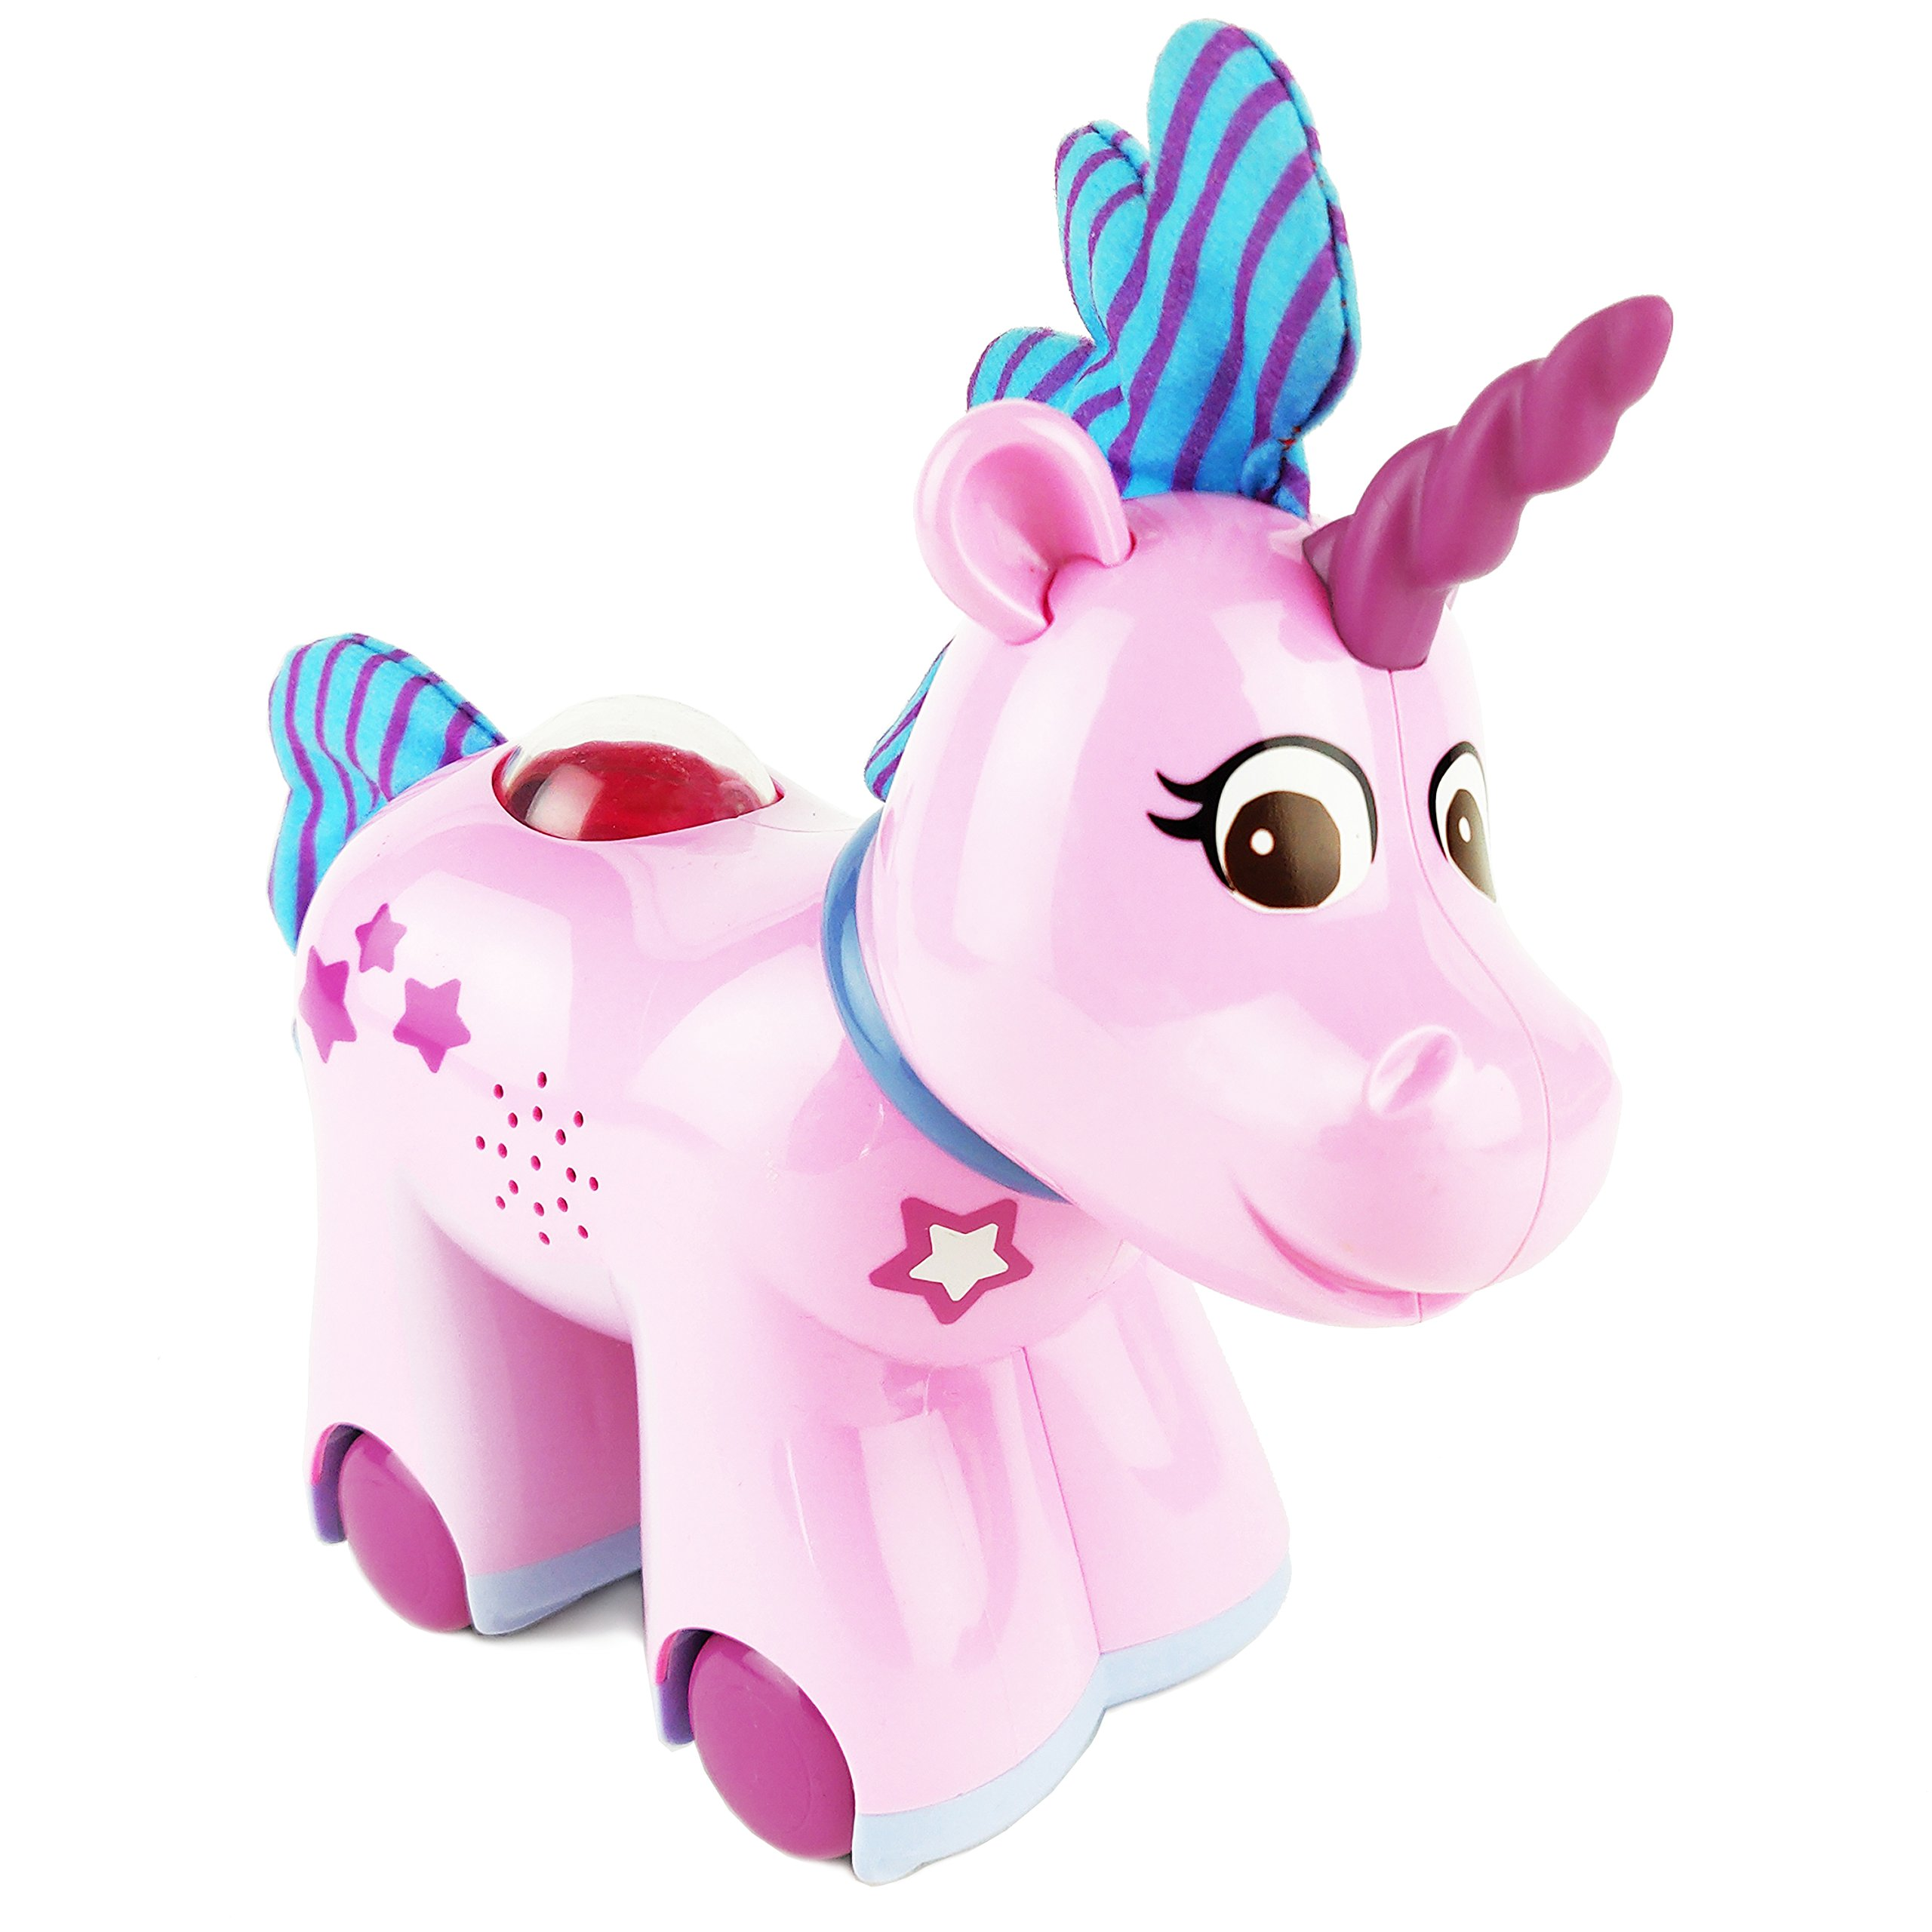 Boley Toys Walking Unicorn Animal Princess Friend - Pink Unicorn Horse with Rotating Head - Children's Battery Powered Rolling Action Toy - with Music and Sounds